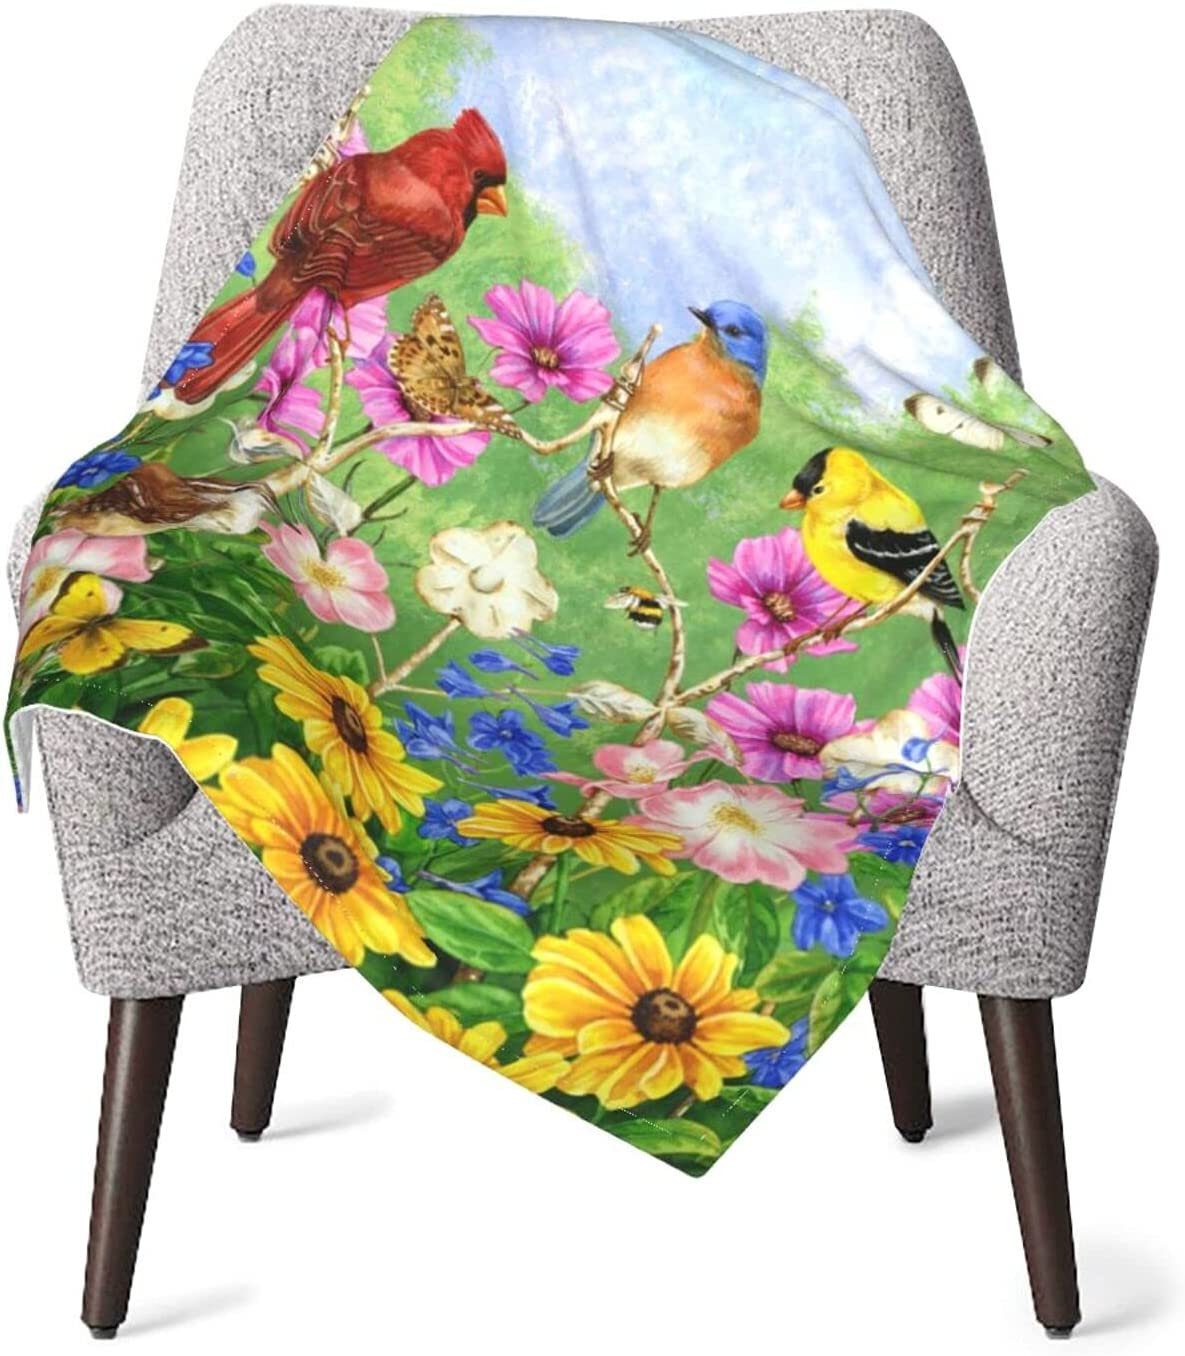 Duduho Rustic Flowers Birds Ranking TOP14 Butterfly Warm Translated Blankets Baby Soft Fu